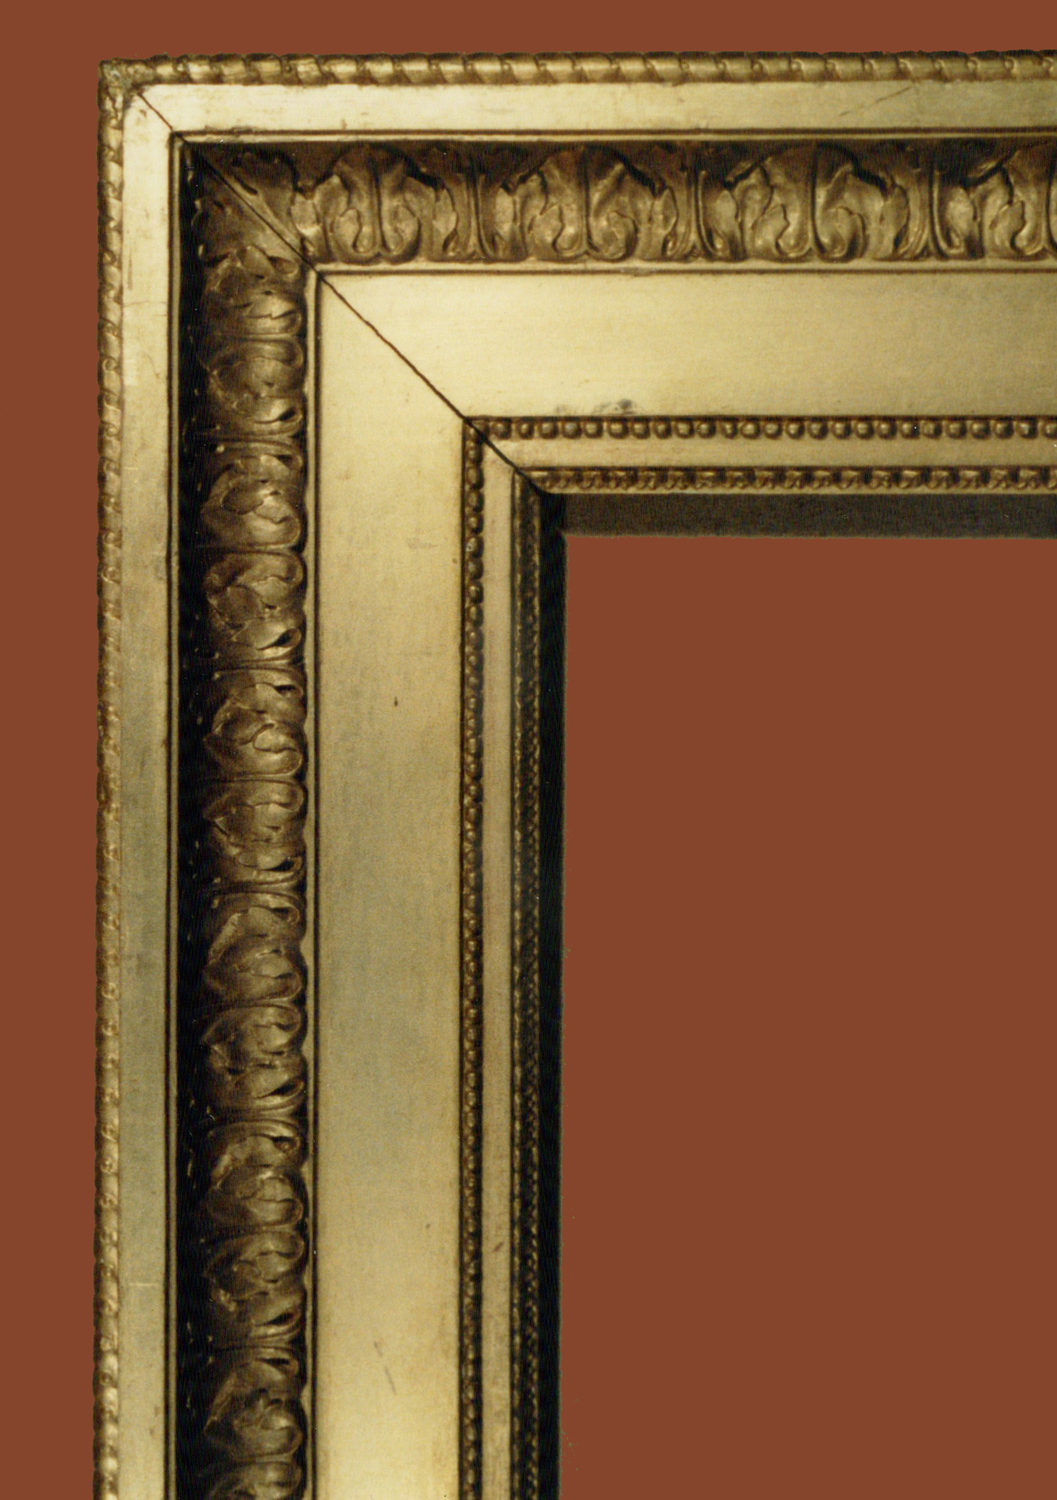 A signed frame by jean chrin the frame blog 9 louis xvi frame c1775 85 sight size 124 x 82 cm width 15 cm detail collection paul mitchell jeuxipadfo Images